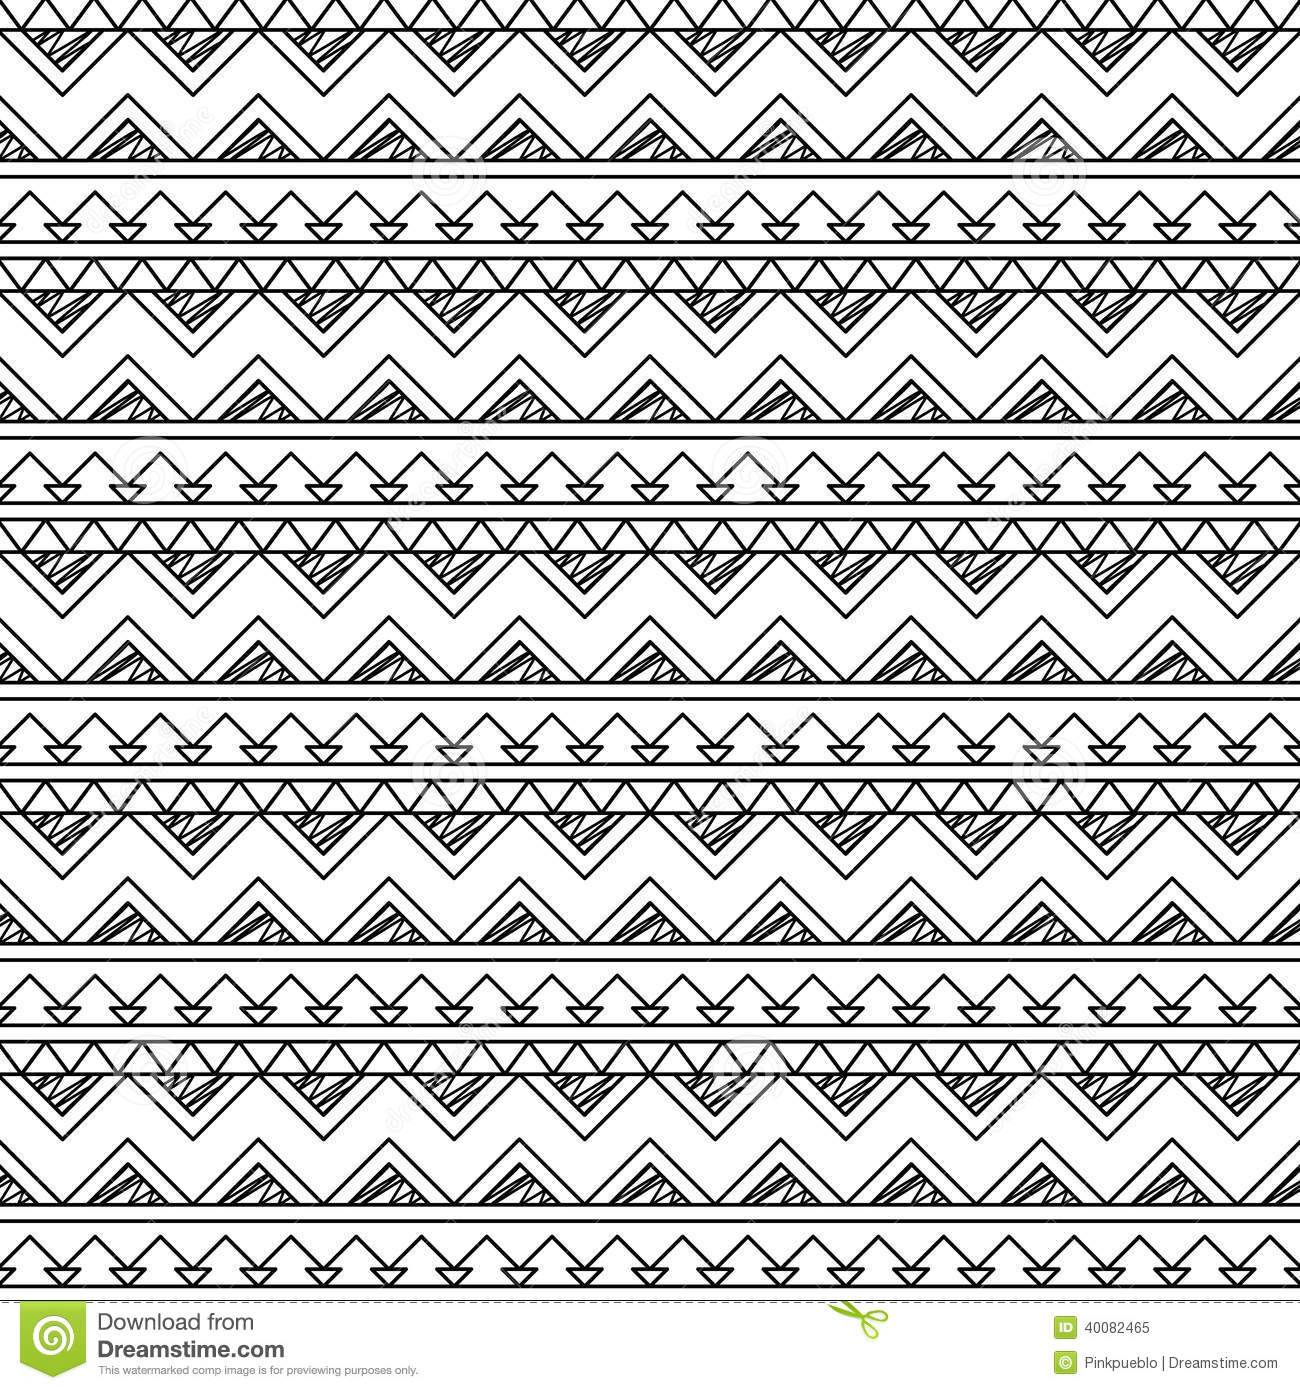 Black And White Doodle Style Seamless Tileable Tribal ...